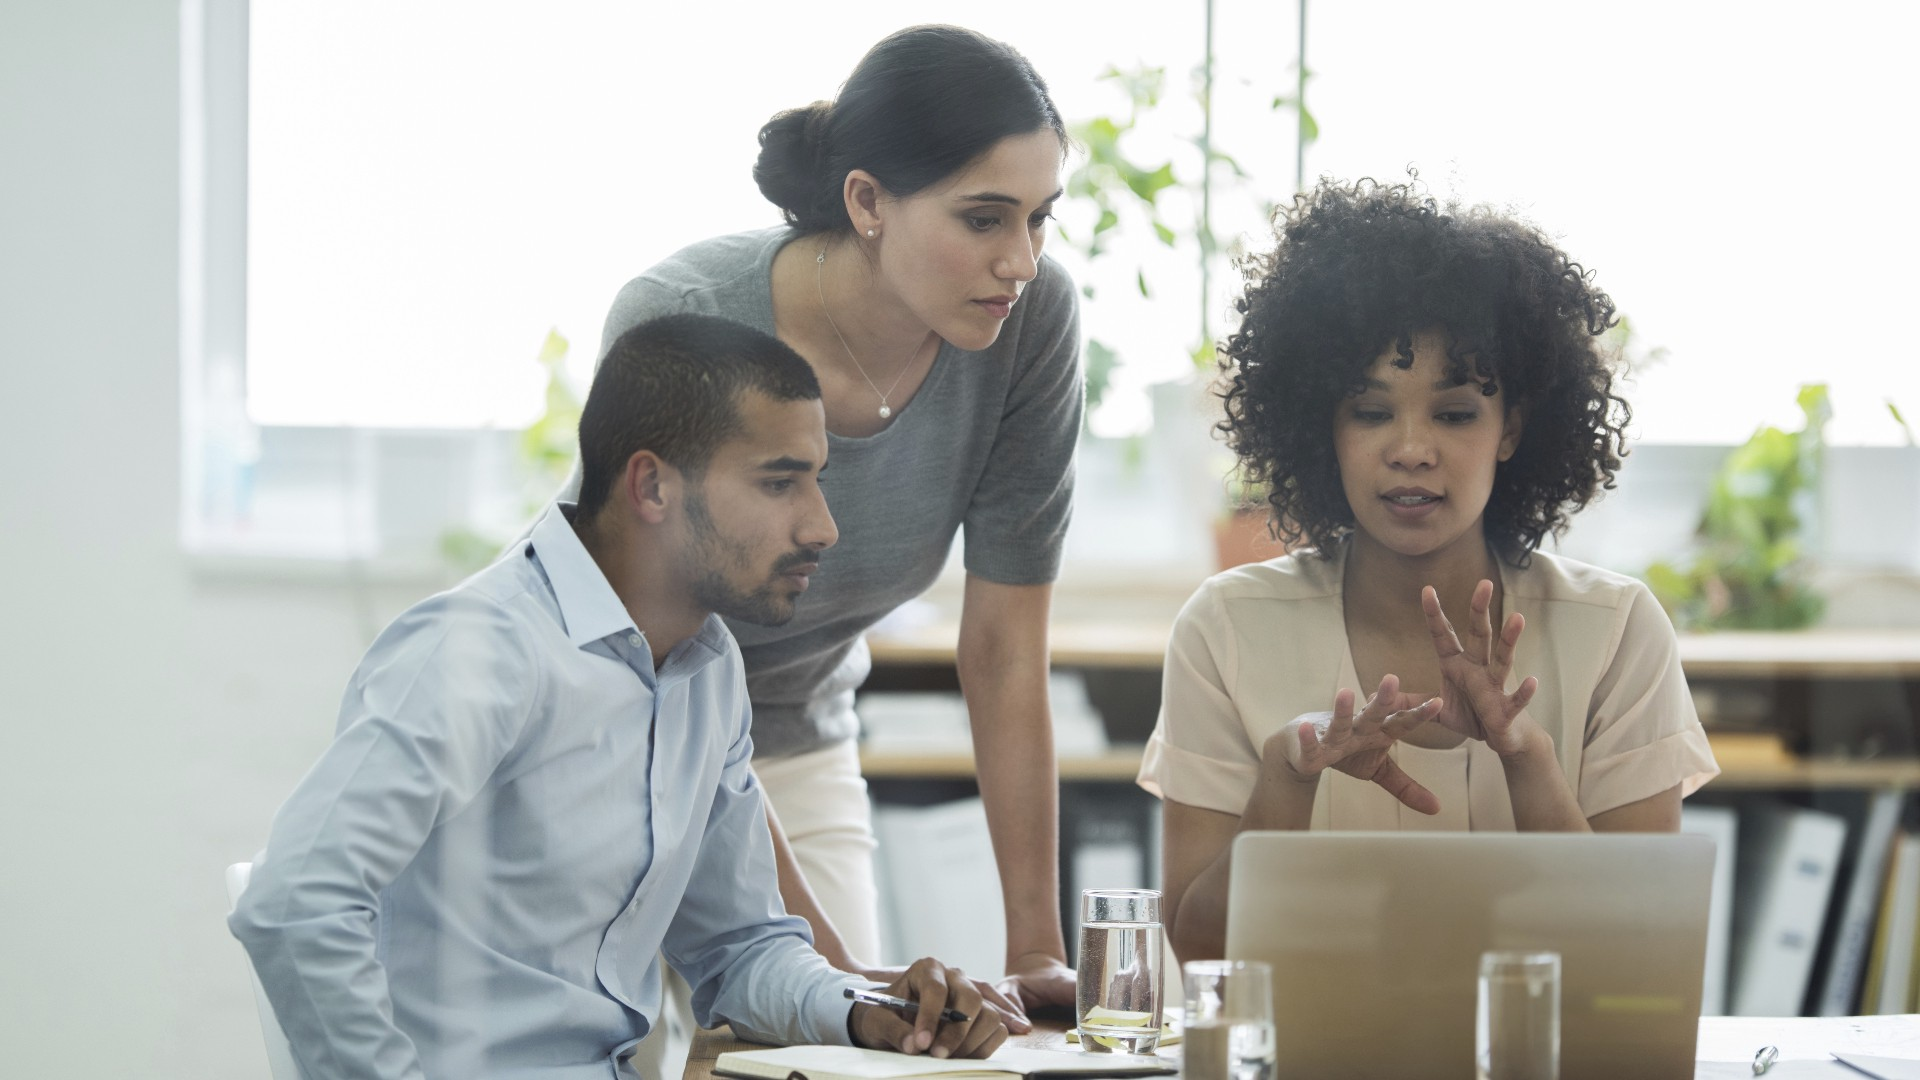 Fostering an inclusive workplace is everyone's responsibility